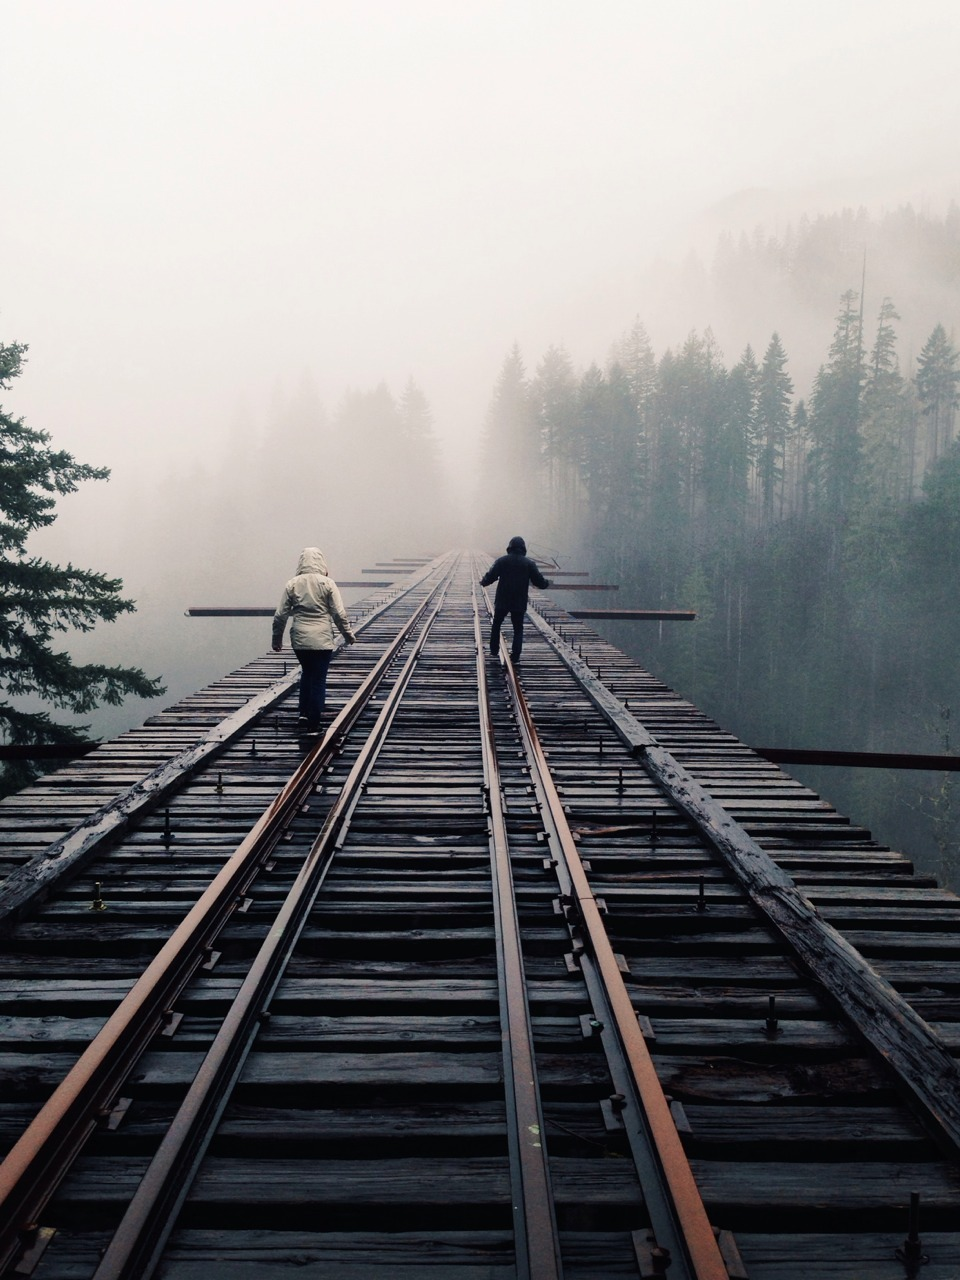 Finally made it to the legendary Vance Creek Bridge